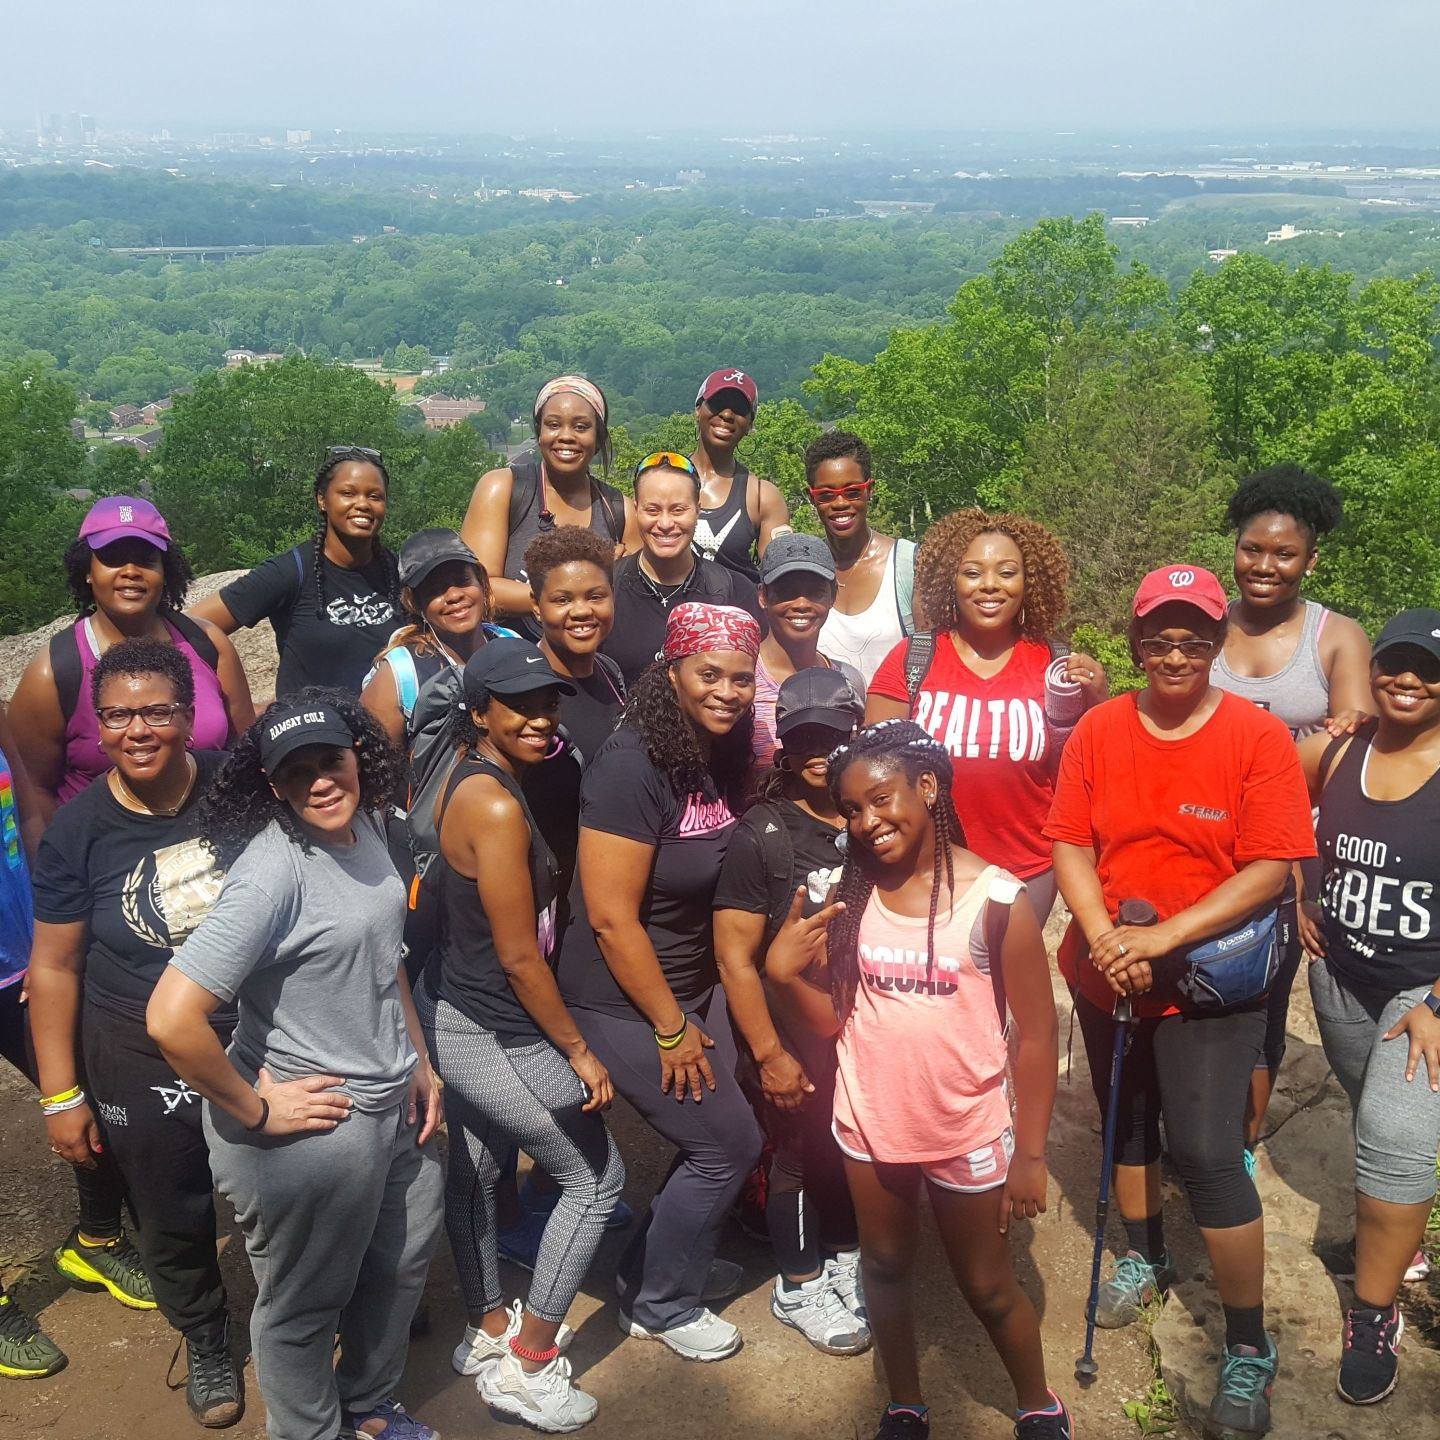 IMG_20190205_183656_155-1440x1440 Ladies Who Hike: Traveling the Birmingham, Alabama Trails